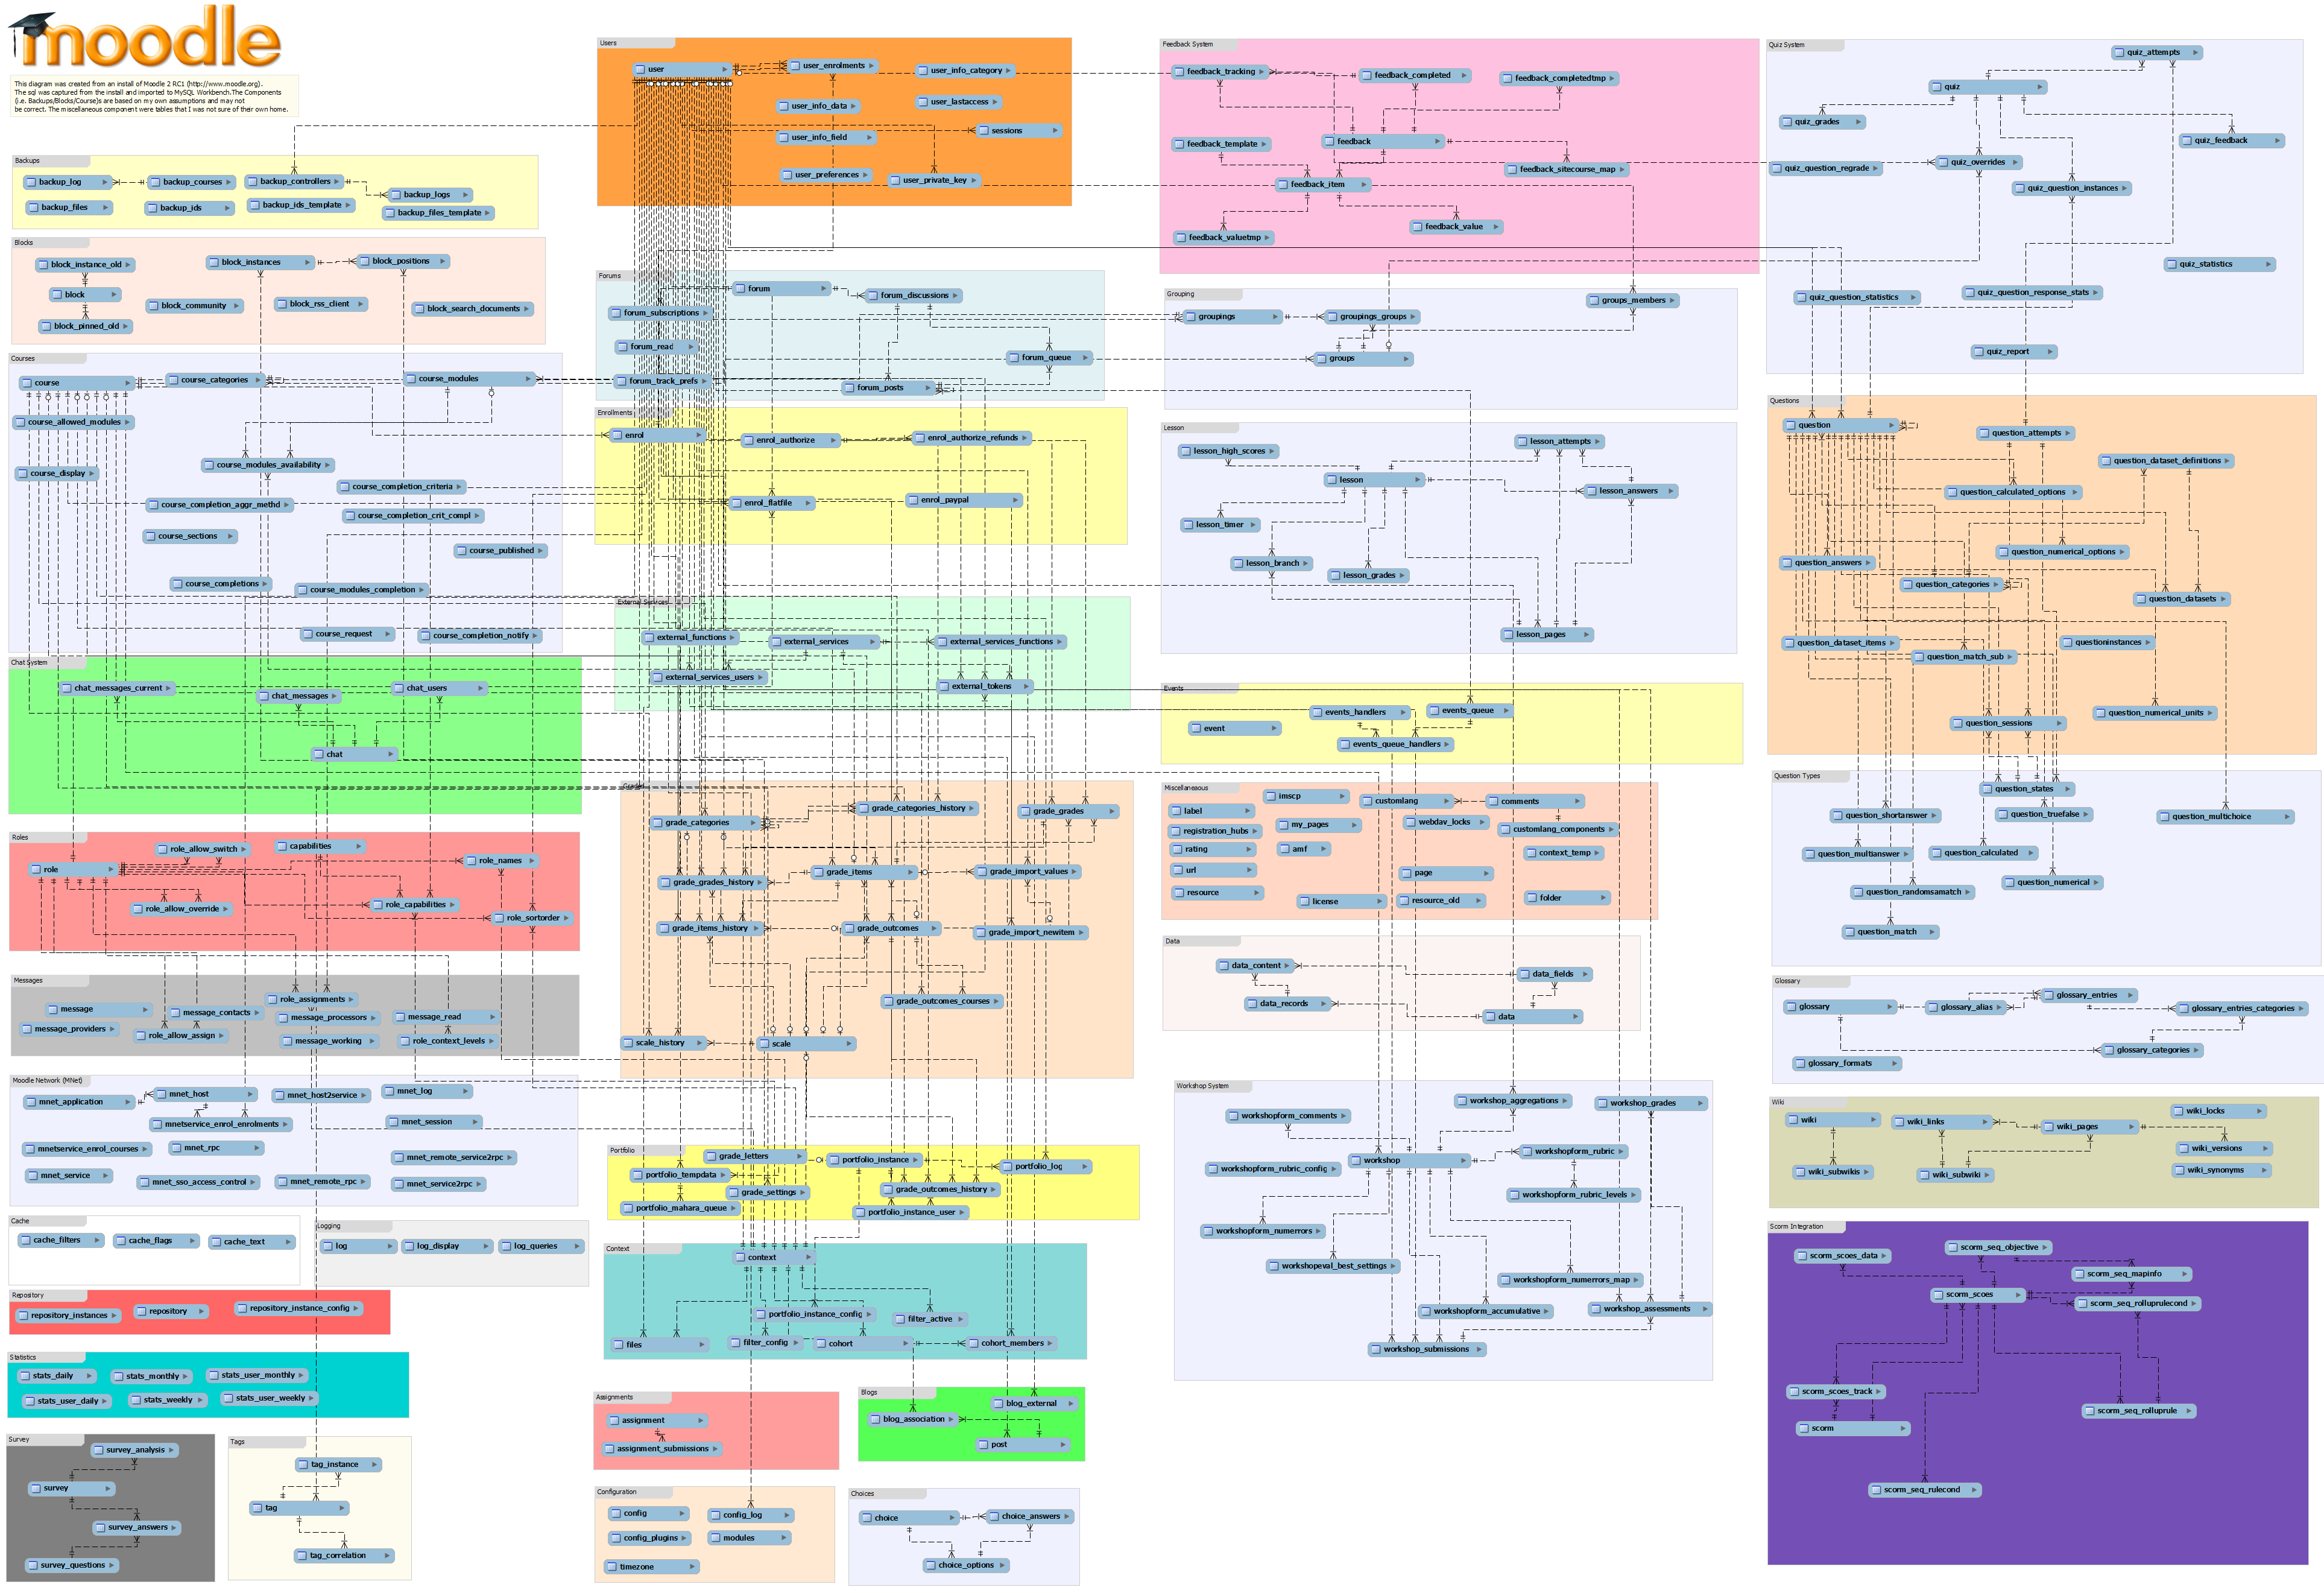 course registration activity diagram object oriented analysis and design diagrams database schema introduction - moodledocs